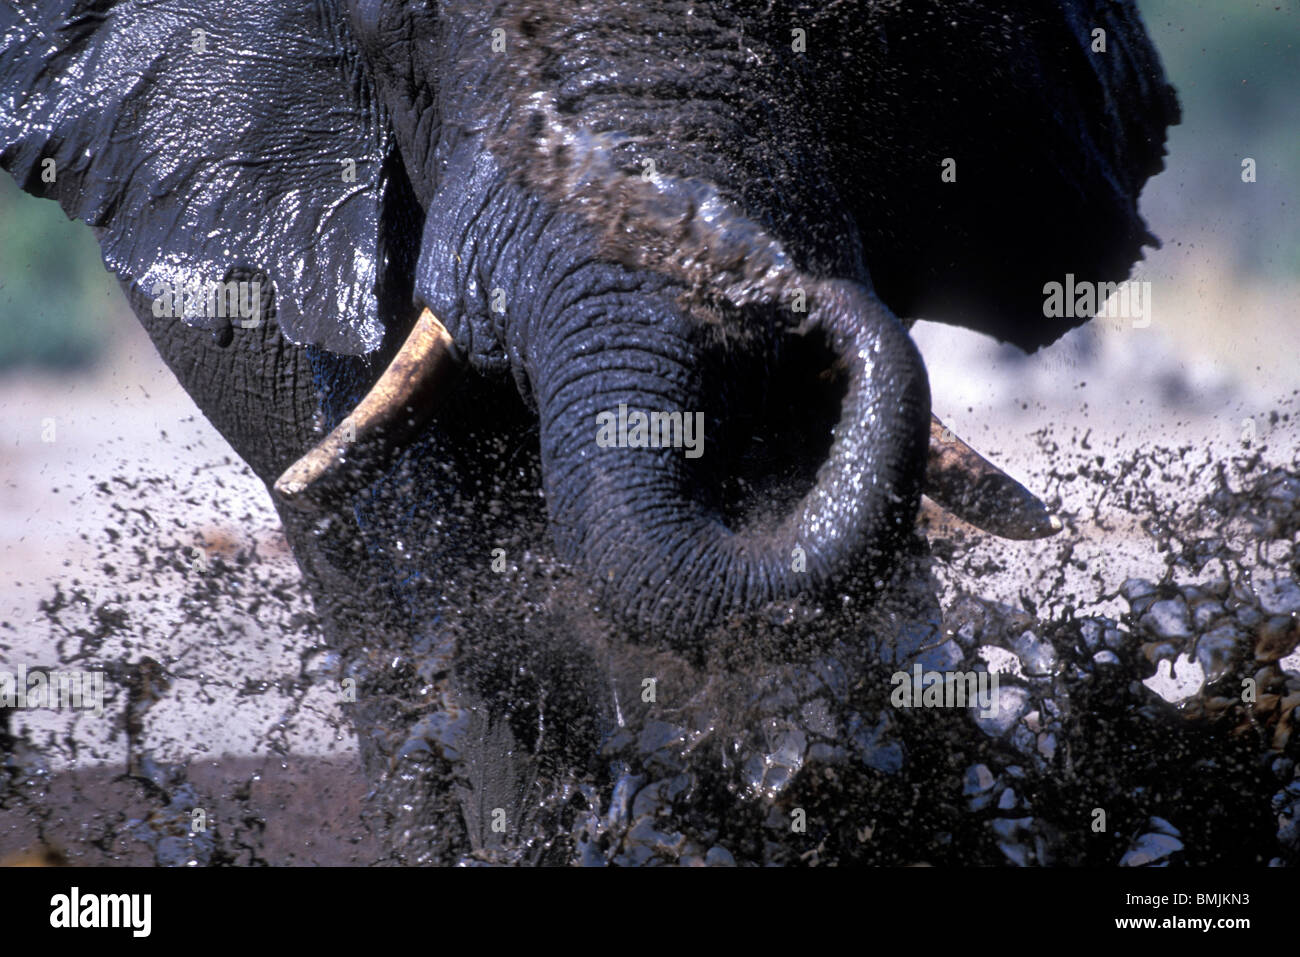 Botswana, Chobe National Park, Elephant (Loxodonta africana) splashes to cool off in water hole in Savuti Marsh - Stock Image